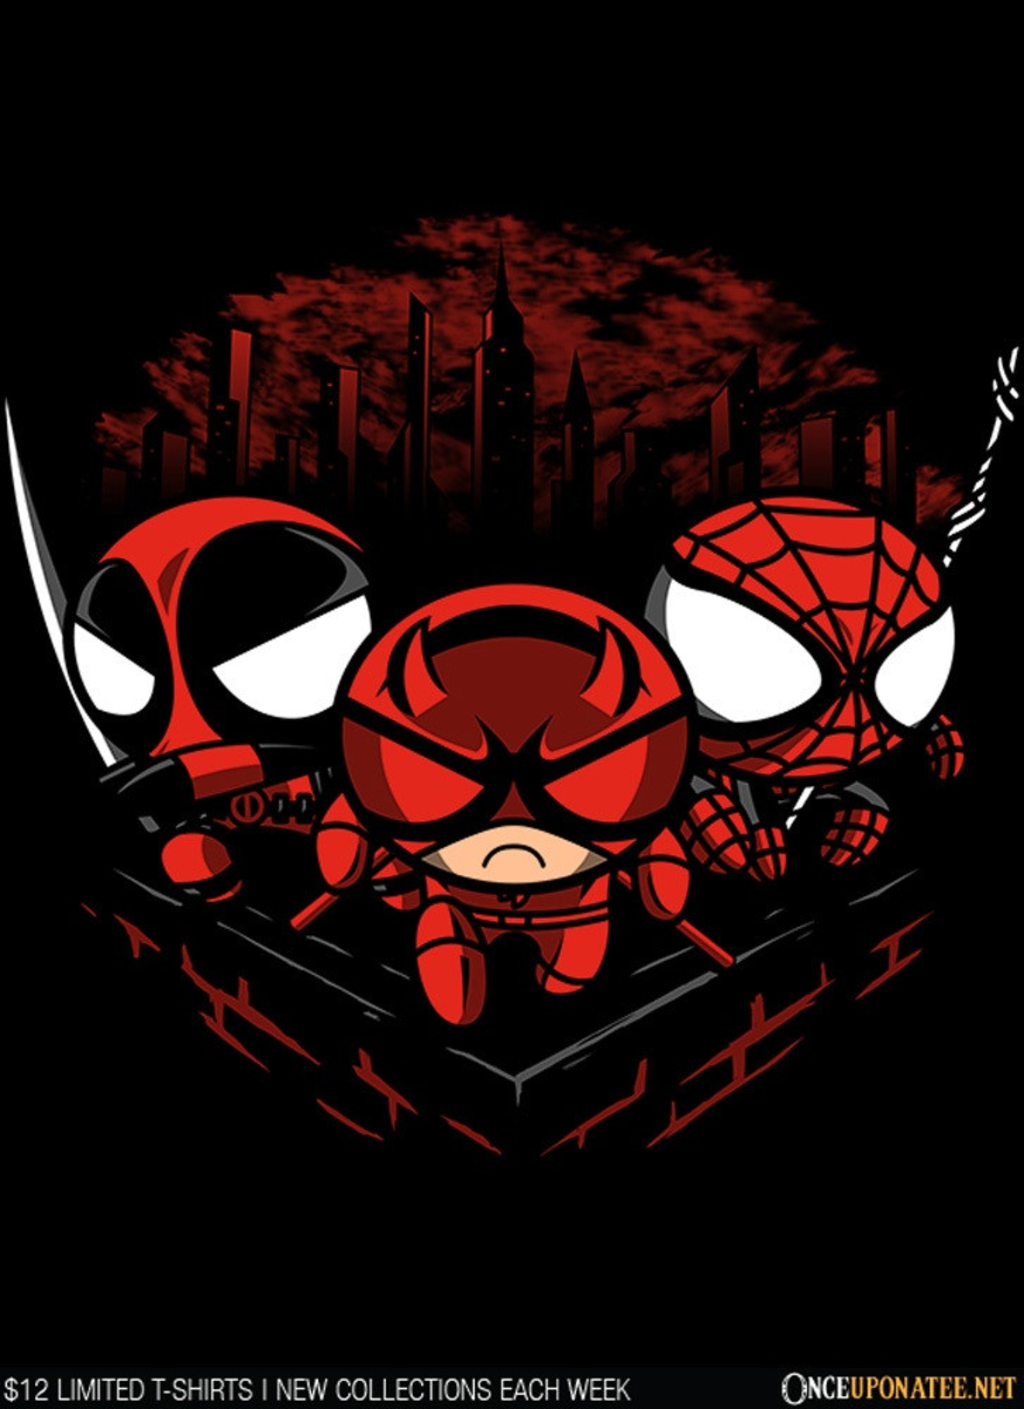 Once Upon a Tee: Team Redpuff